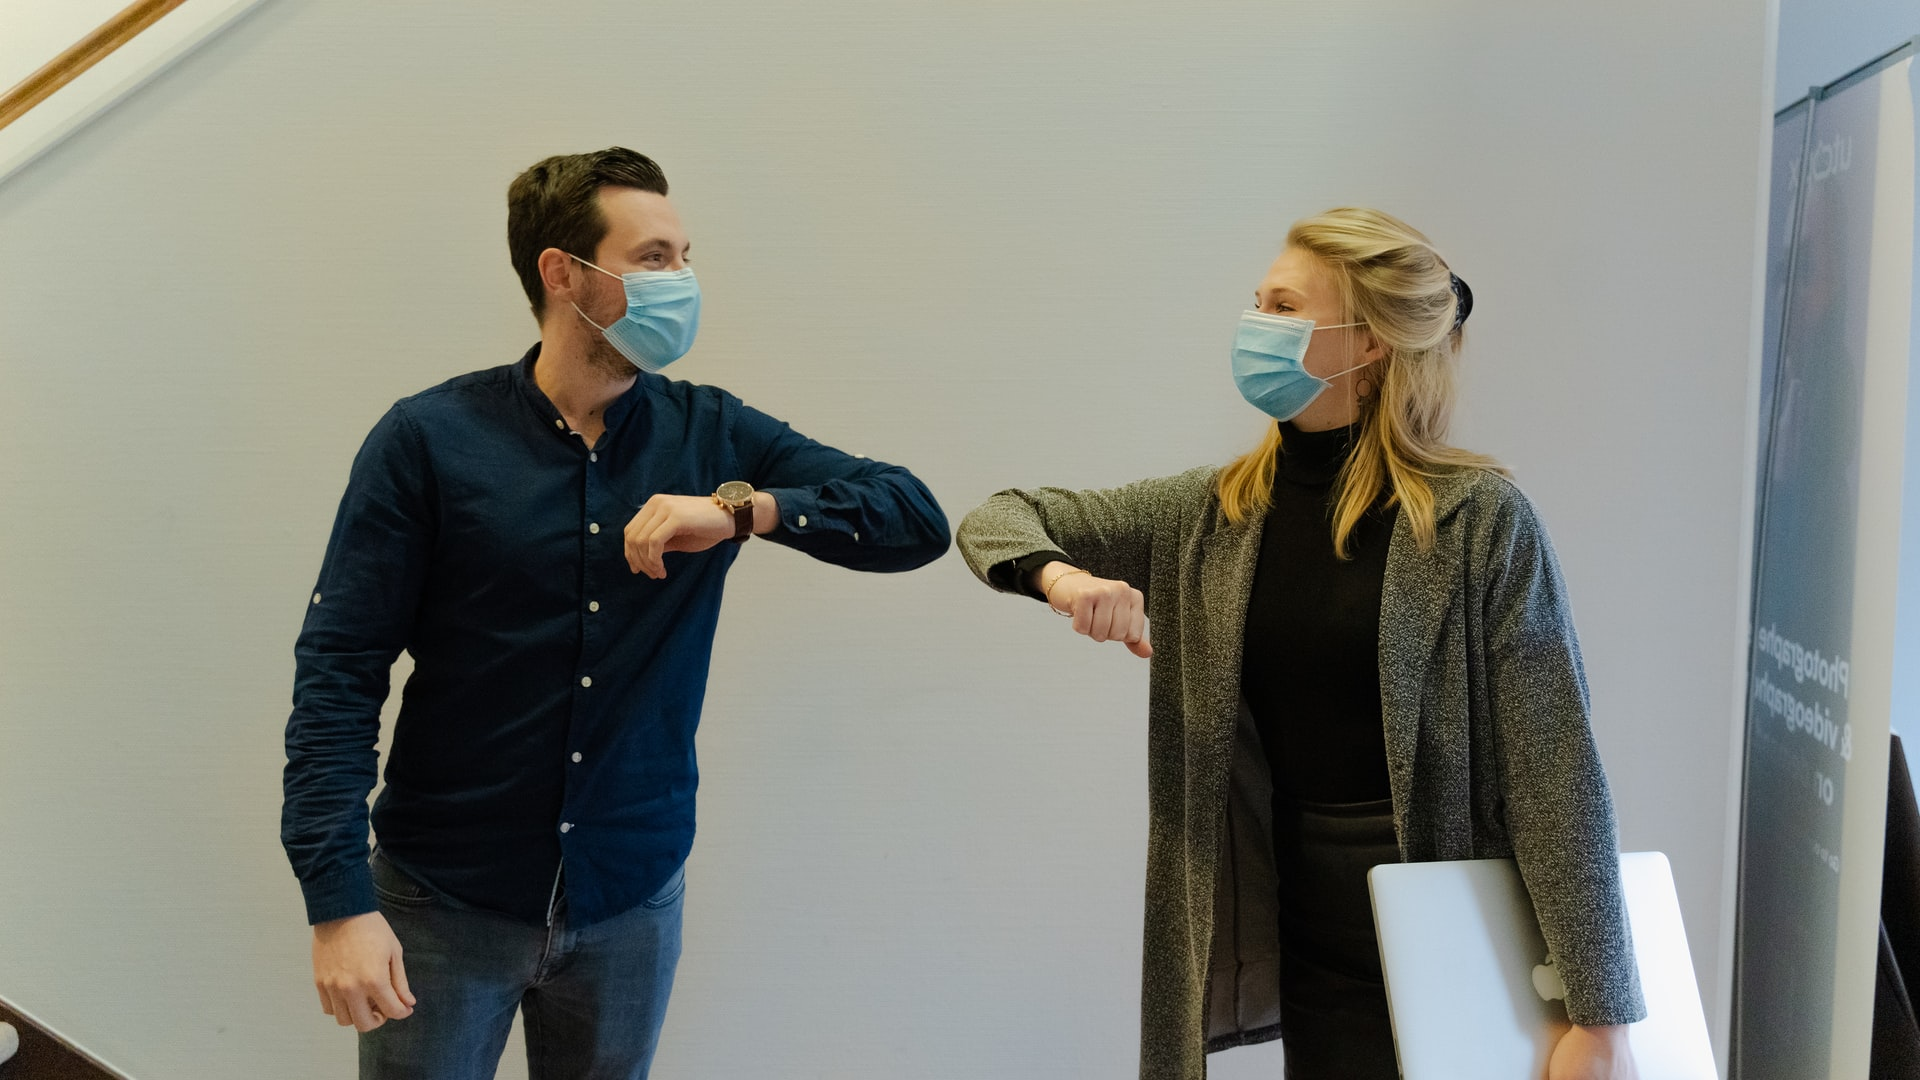 coworkers touch elbows in greeting